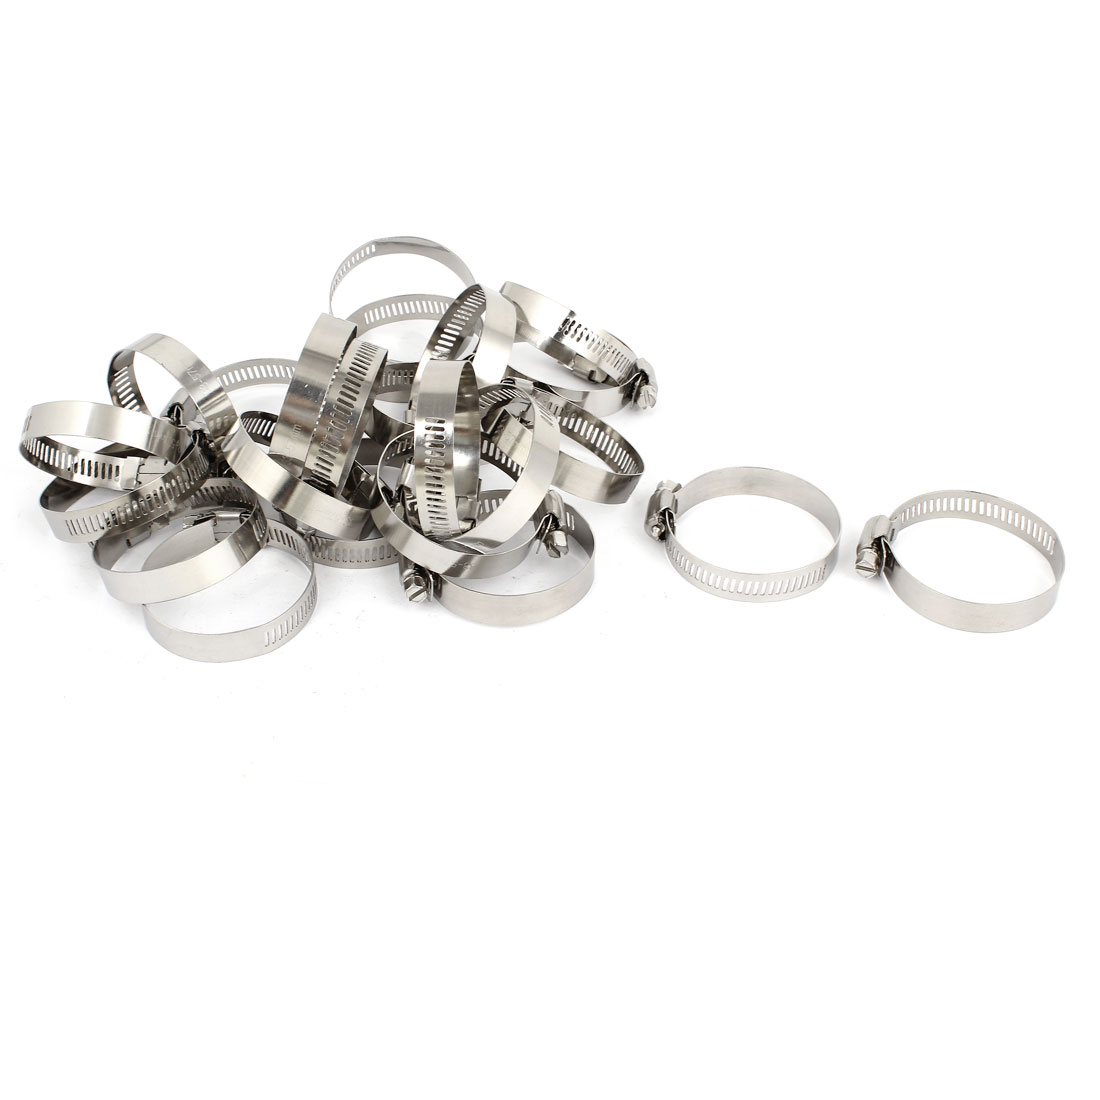 25 Pcs 33-57mm Stainless Steel Adjustable Hollow Out Band Worm Drive Hose Clamps